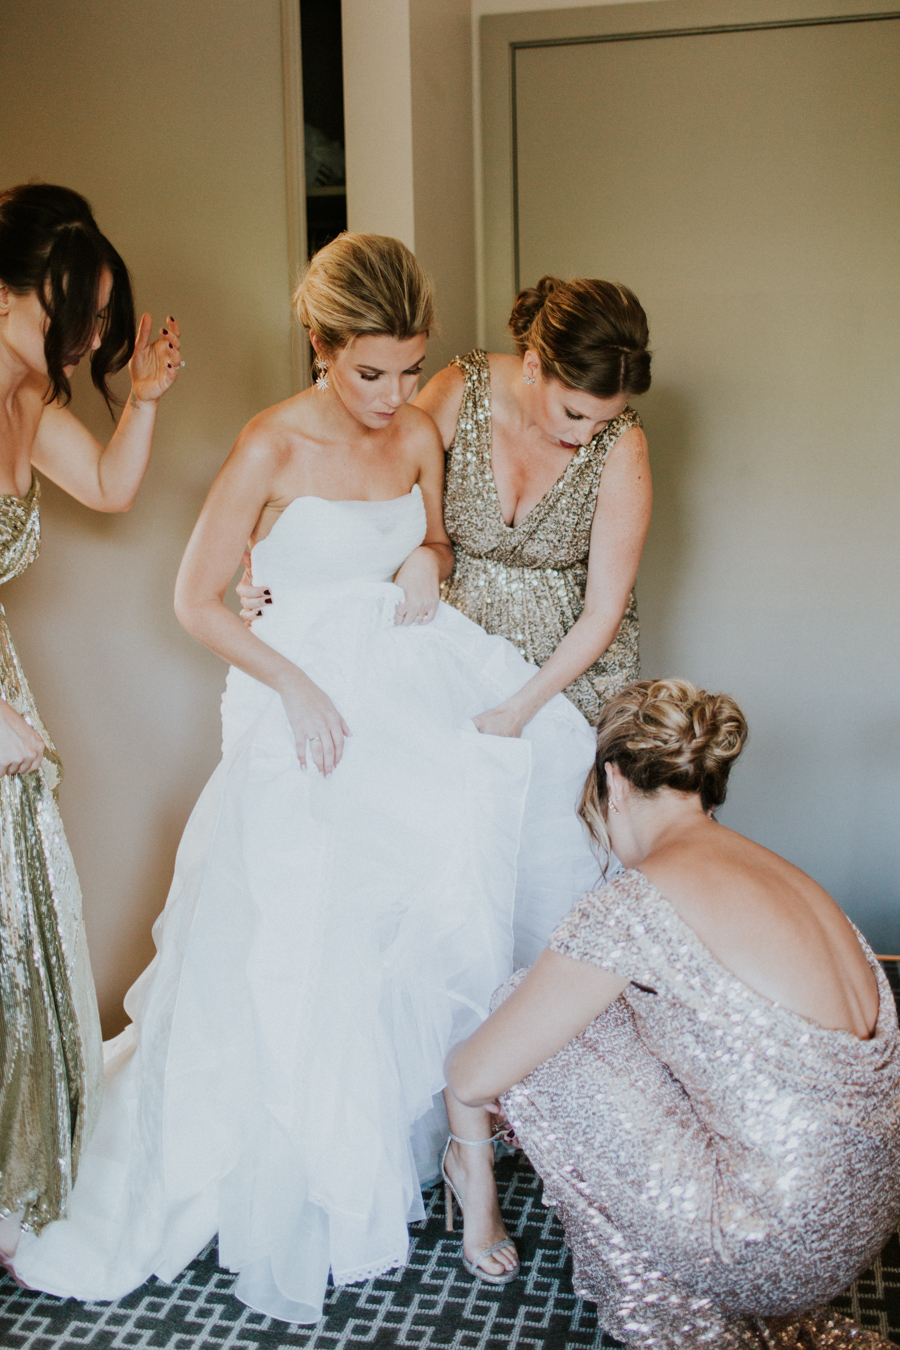 Loren and Alex Kuznetsov Gold and Burgundy wedding at Epicurean Tampa Royal Fall Wedding in Tampa Florida Inside Weddings MD Events Tampa-15.jpg